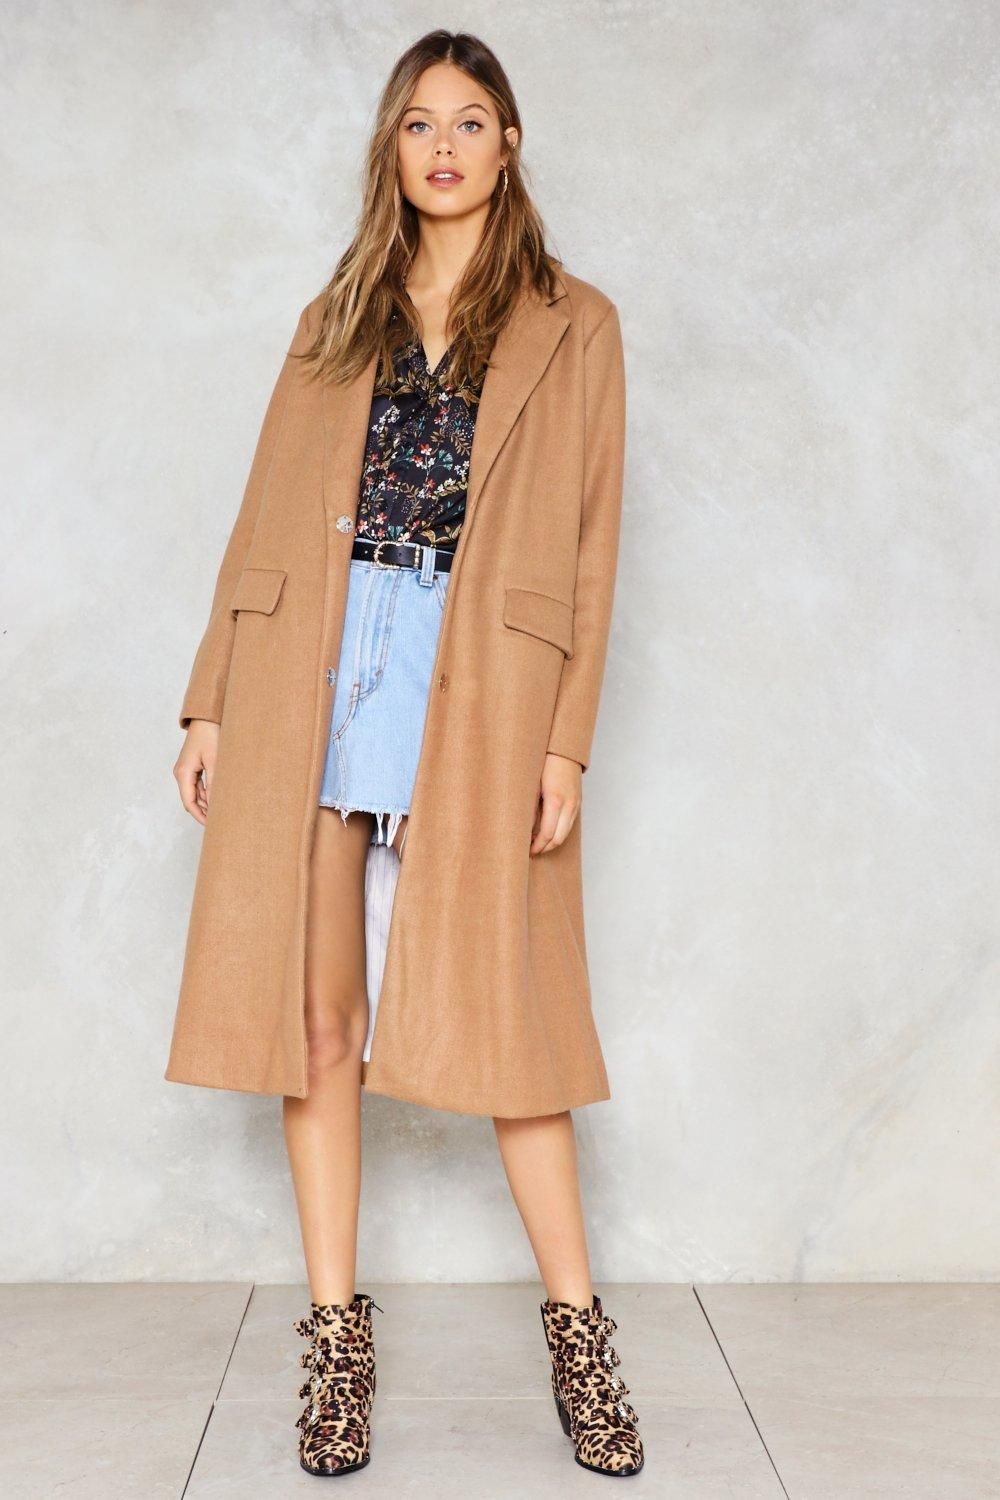 Downtown Train Trench Coat   Shop Clothes at Nasty Gal! 7c0159e414